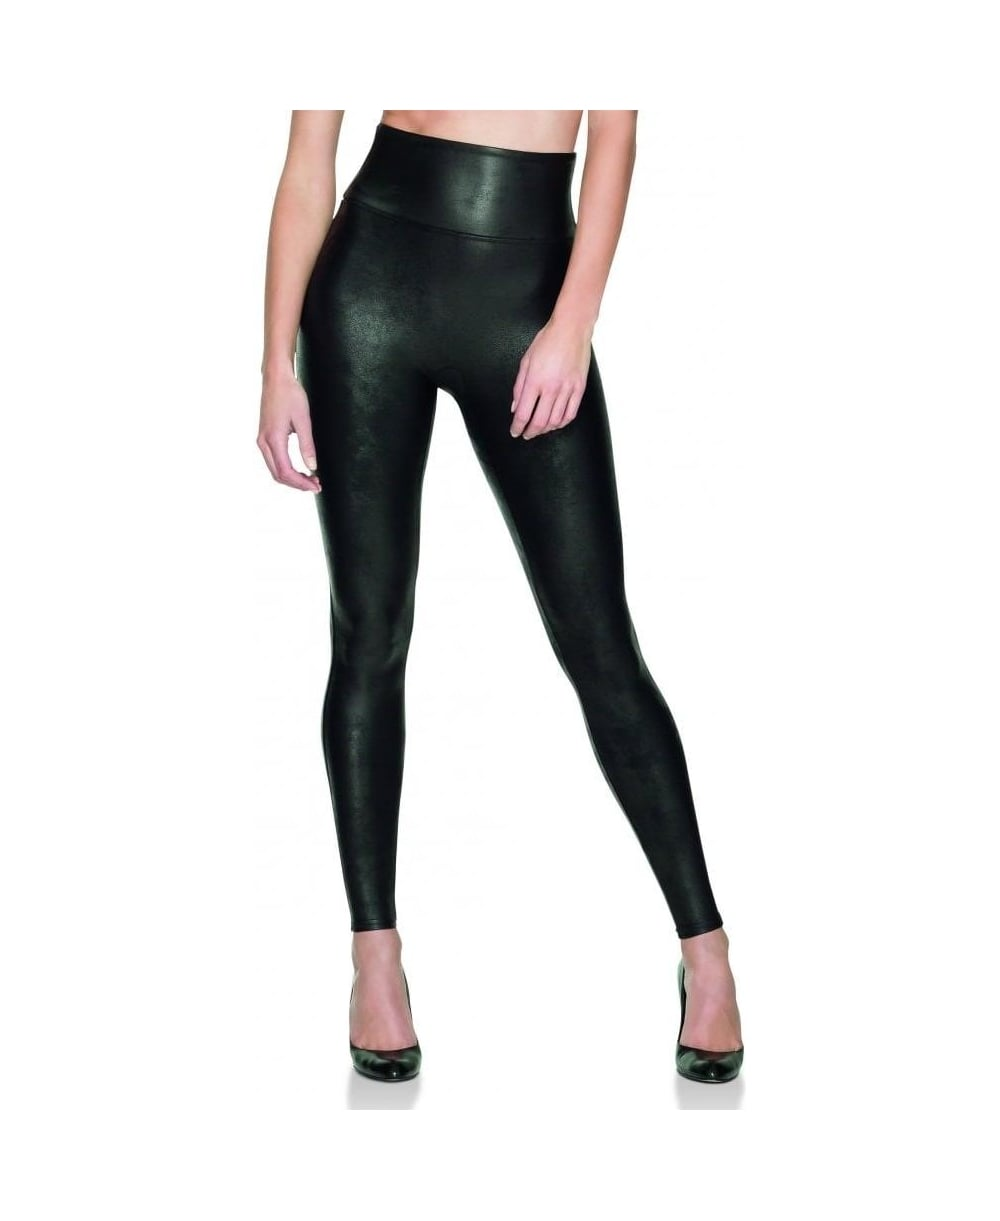 5a75dd55bd7 Spanx Faux Leather Leggings - Leggings from luxury-legs.com UK